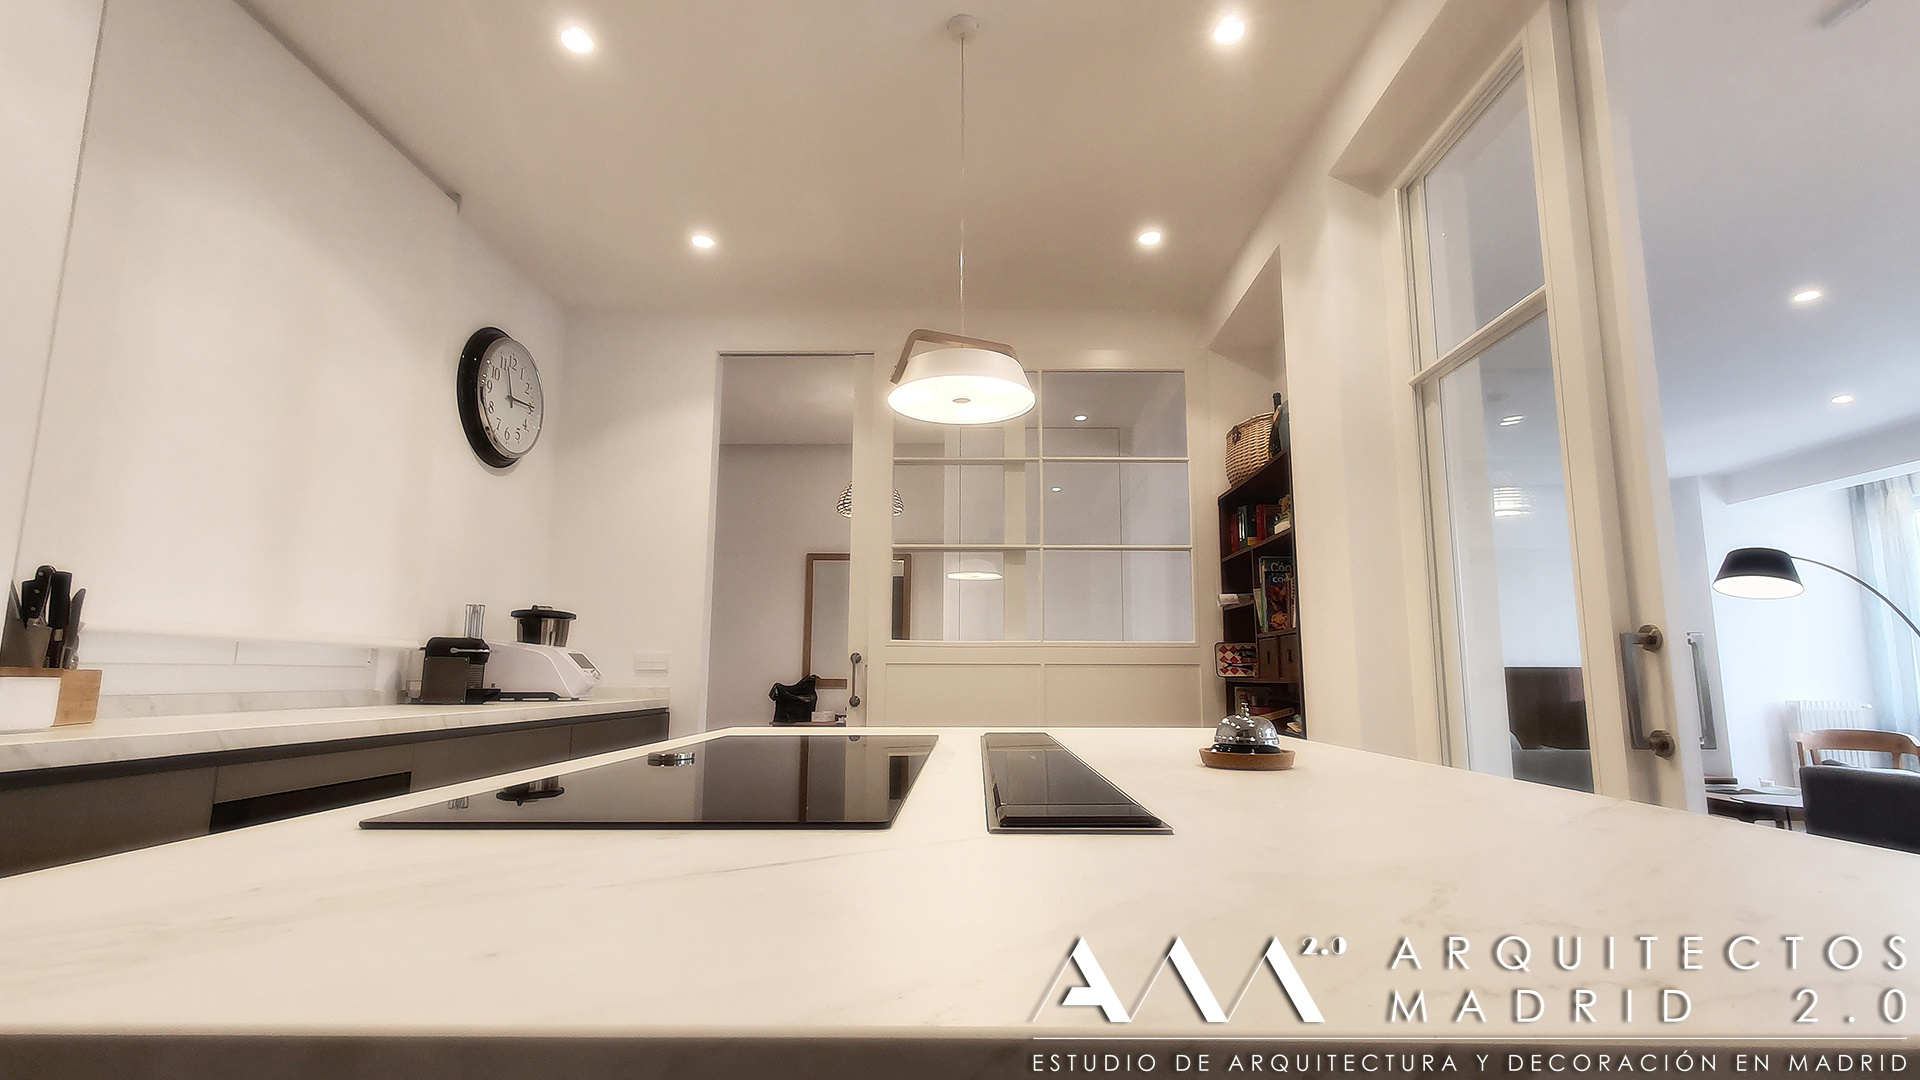 proyecto-reforma-integral-vivienda-arquitectos-madrid-ideas-decoracion-salon-cocina-home-interior-design-13